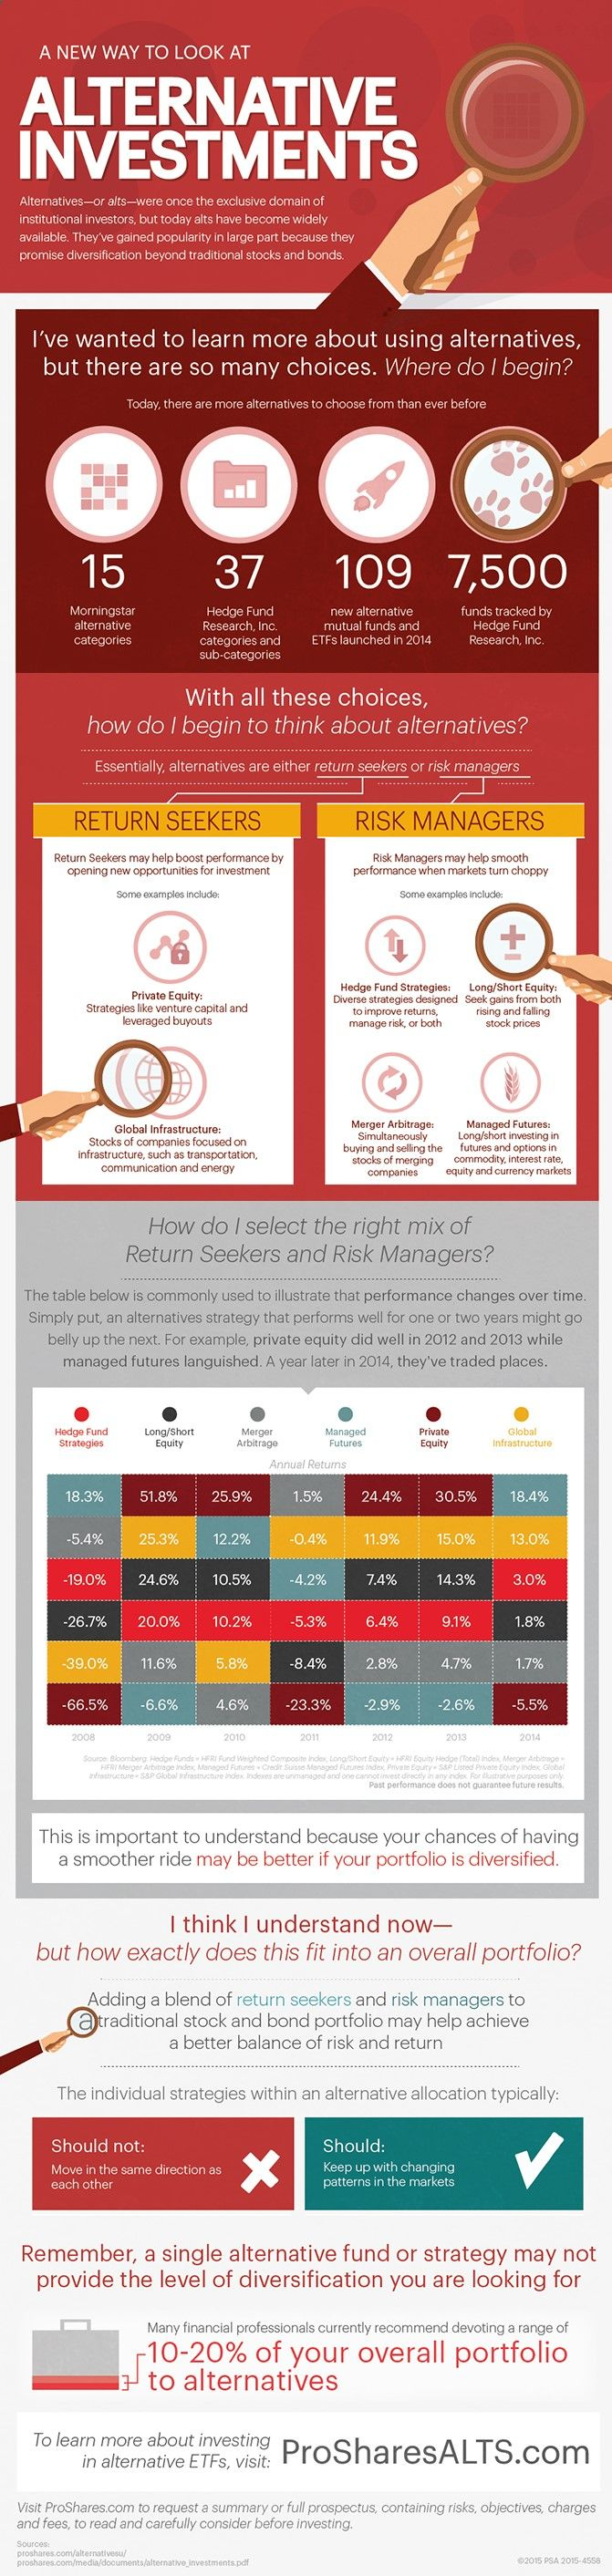 Trade Finance Business - A New Way to Look at Alternative Investments #infographic #Investments #Finance #Business - Whether you wish to be a successful Scalper, Day Trader, Swing Trader, ot Position Trader ANY financial instrument can be traded including: Forex, Futures, Commodities, Stocks, E-Minis, Metals, Binary Options, Any Market.